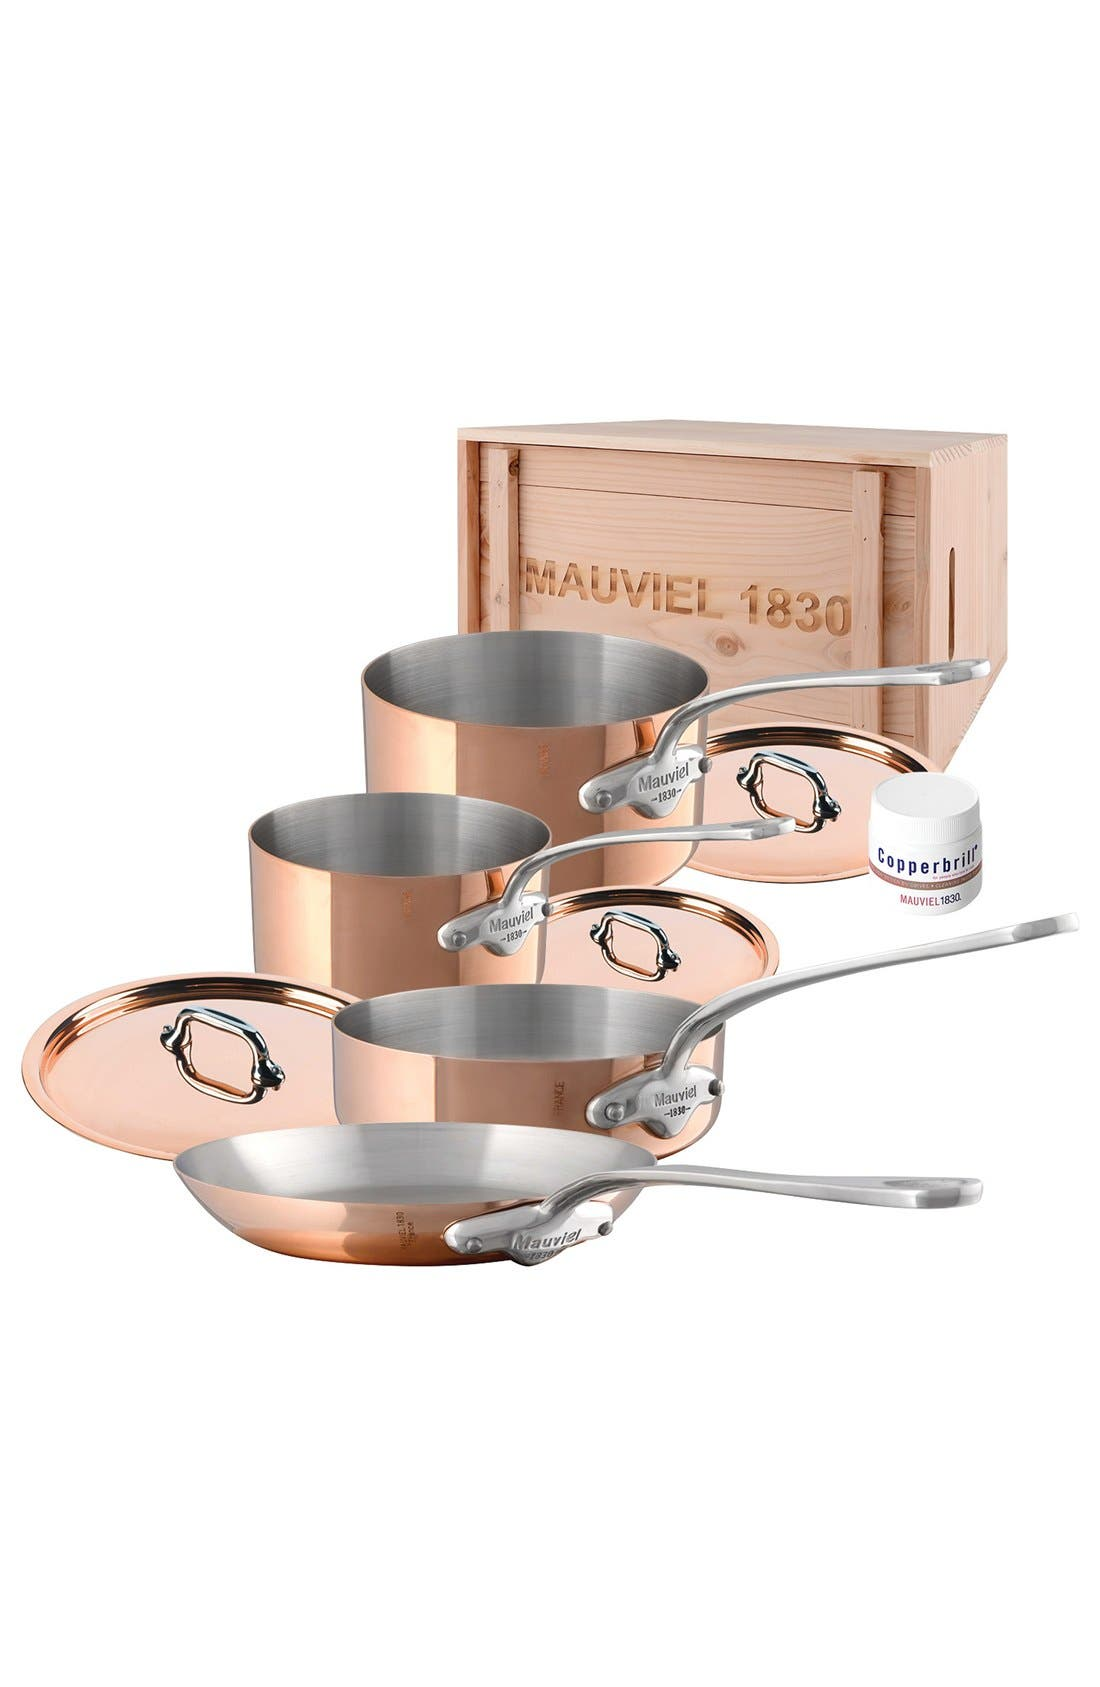 M'héritage - M'150s 7-Piece Copper & Stainless Steel Cookware Set,                             Main thumbnail 1, color,                             Metallic Rust/Copper